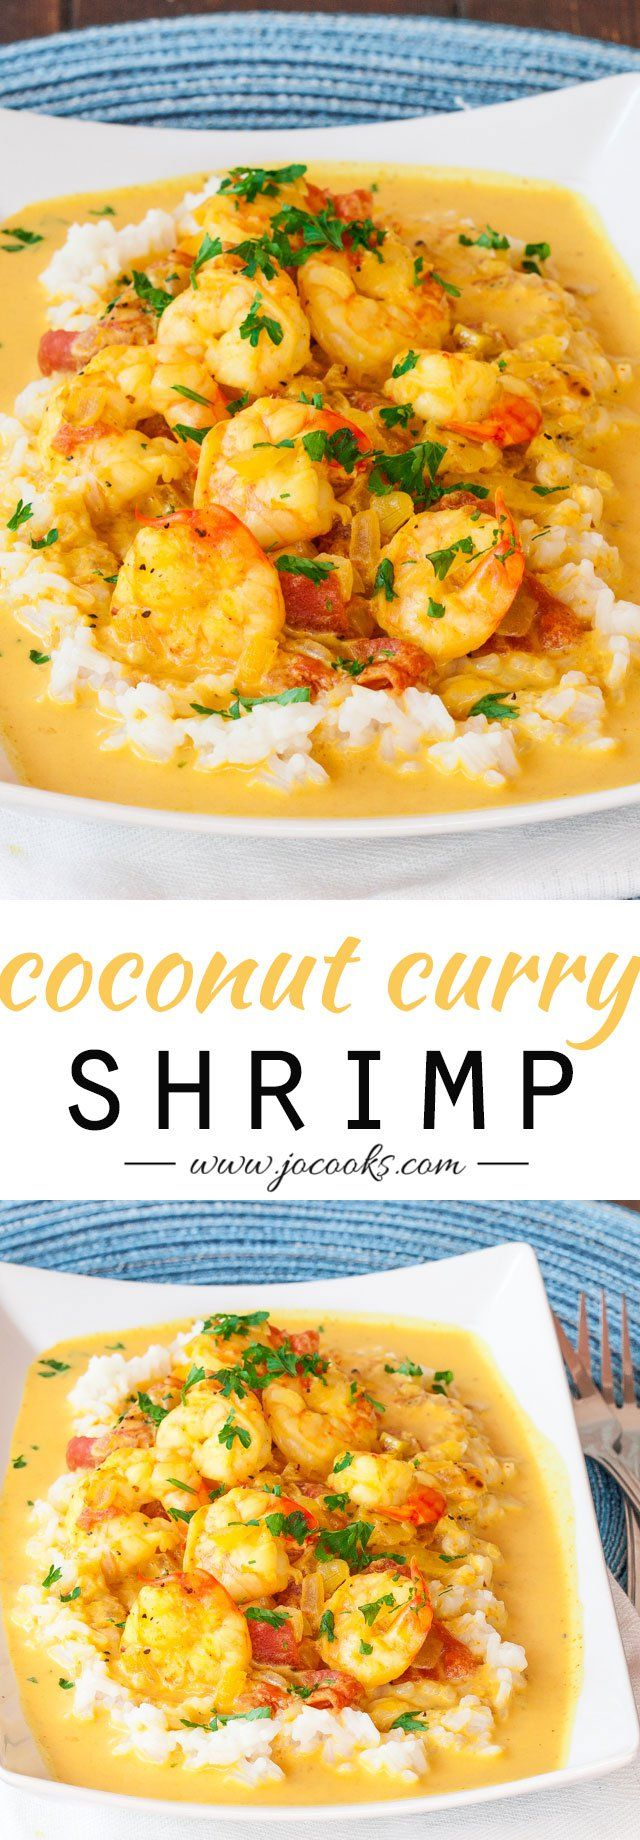 Coconut Shrimp Curry- delish.  Added red peppers, broccoli and serranos